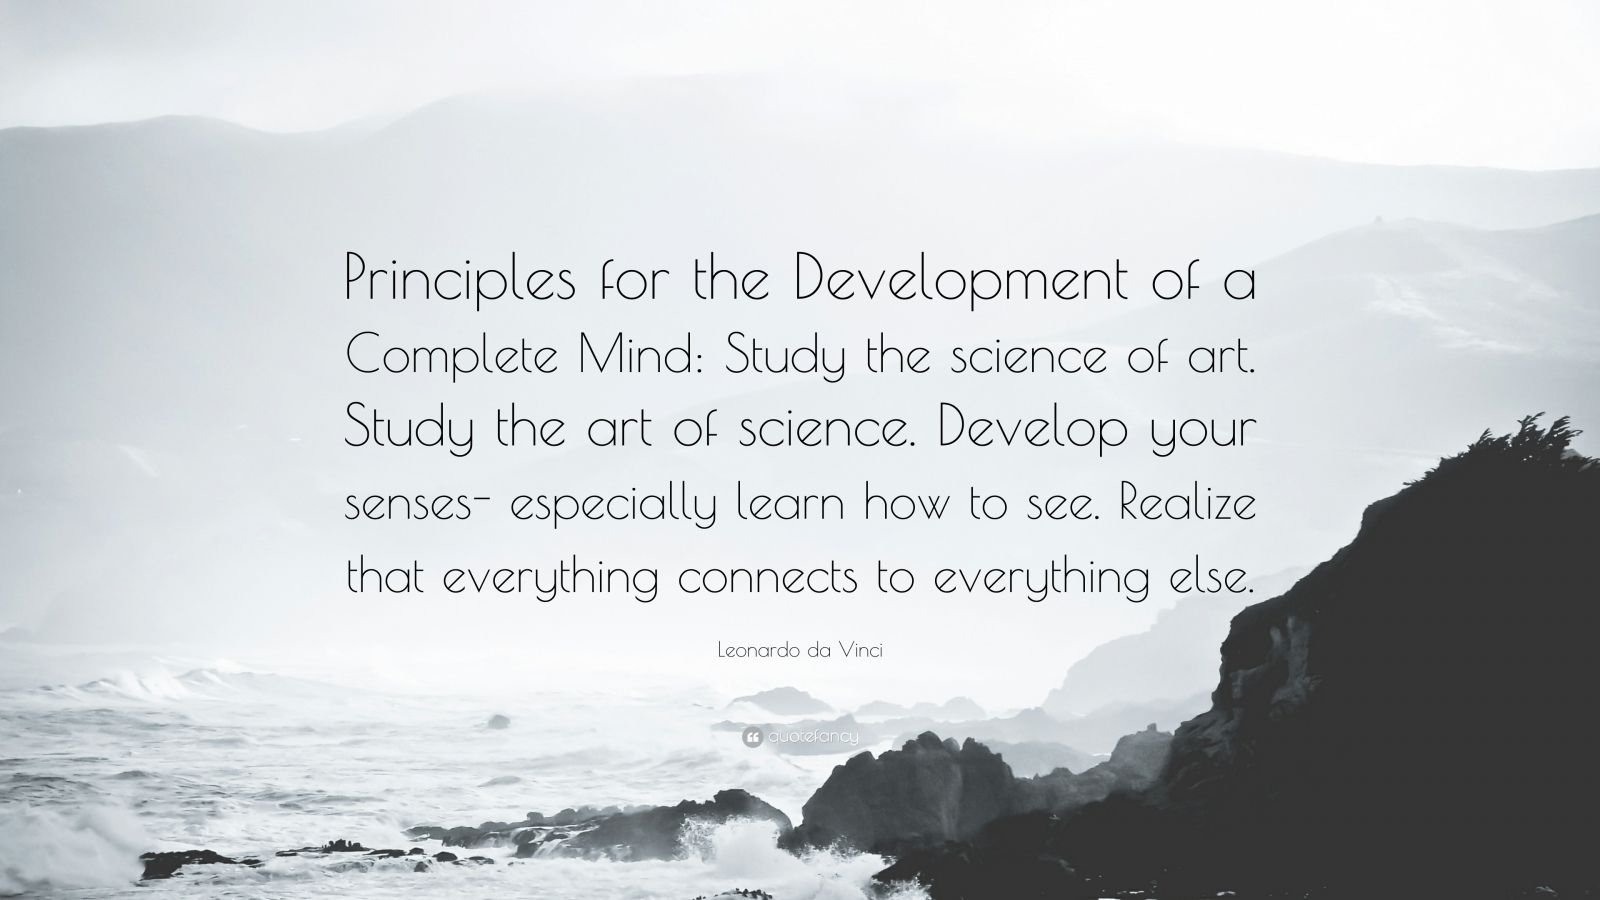 """Leonardo da Vinci Quote: """"Principles for the Development of a Complete Mind: Study the science of art. Study the art of science. Develop your senses- especially learn how to see. Realize that everything connects to everything else."""""""